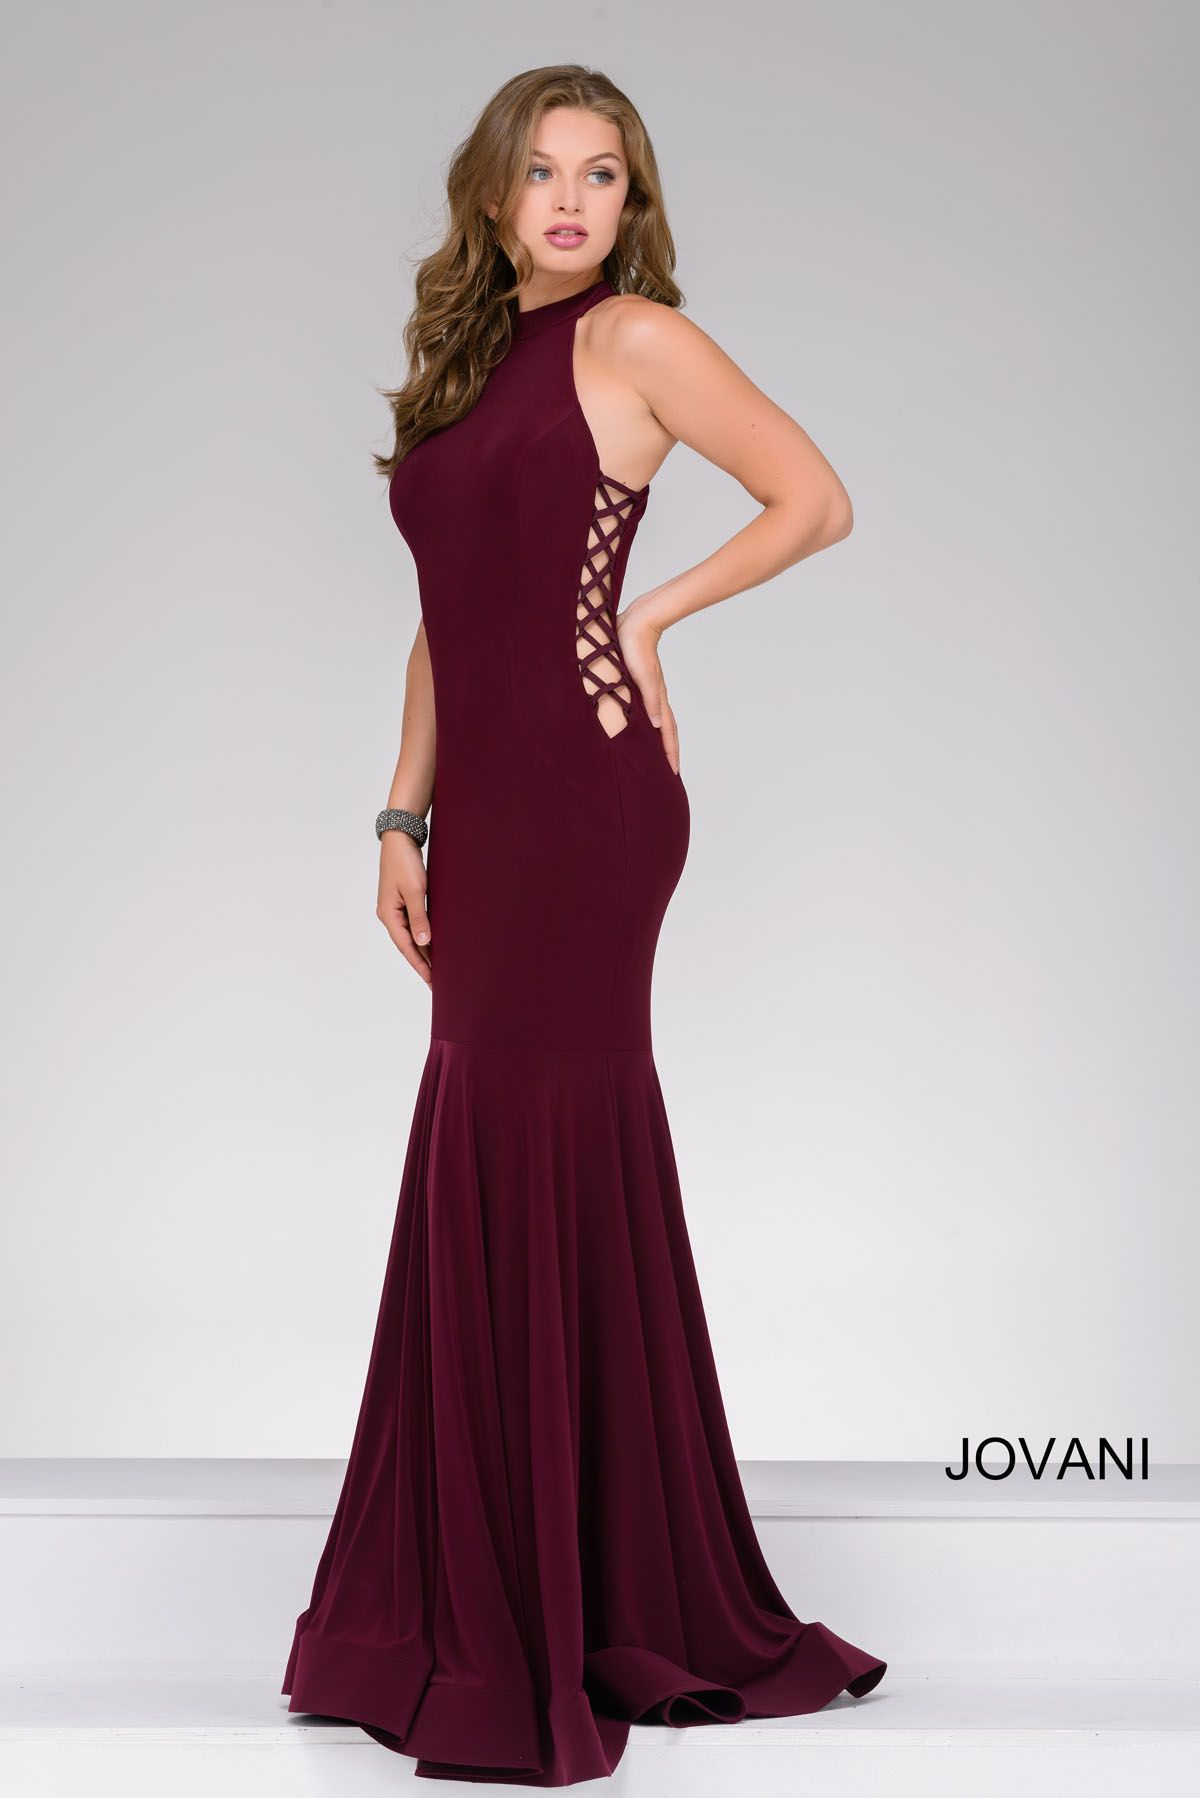 Jovani 50487 | Jovani Prom Dresses | Pinterest | Prom, Prom dress ...